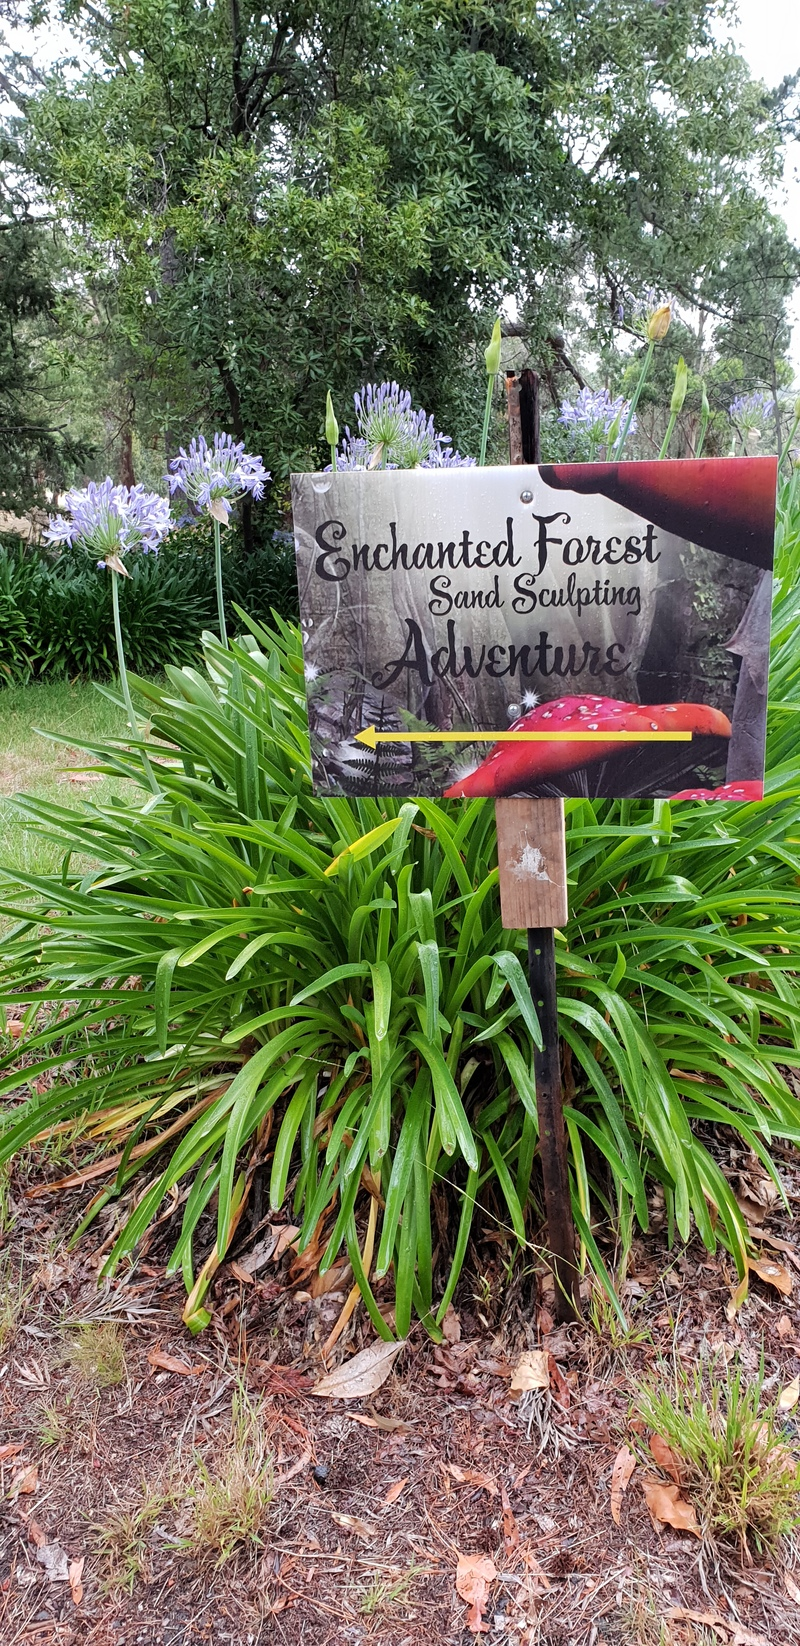 The Enchanted Forest Sand Sculpture Adventure